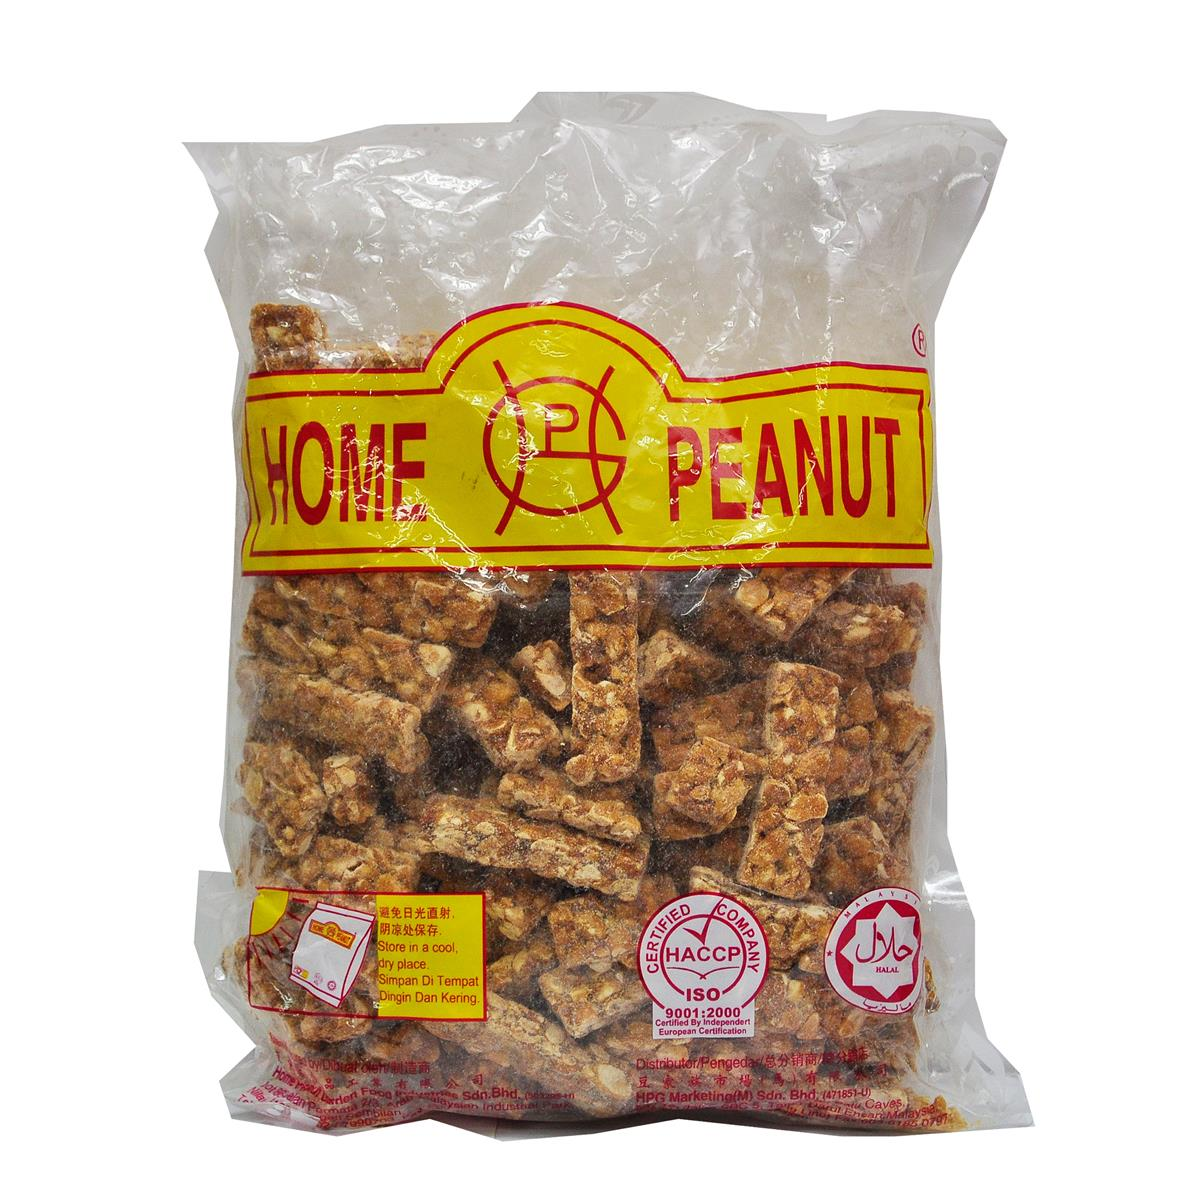 Home Peanut Garden Peanut Candy Block Bar 700g